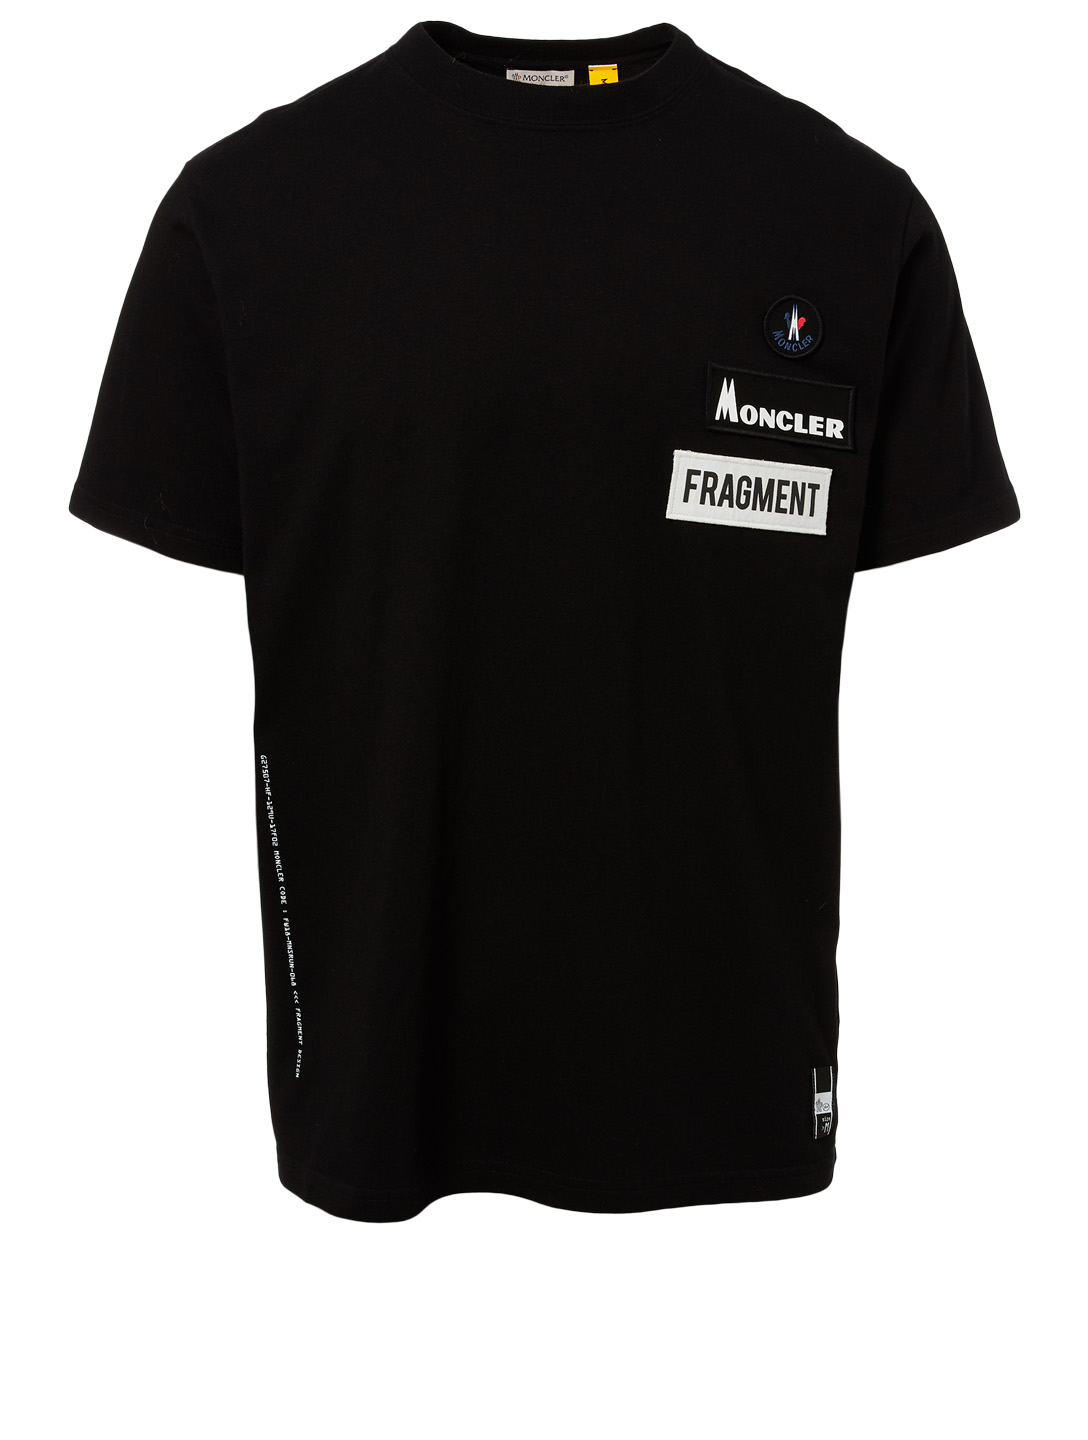 MONCLER GENIUS 7 Moncler x Fragment Logo Patch T-Shirt Men's Black